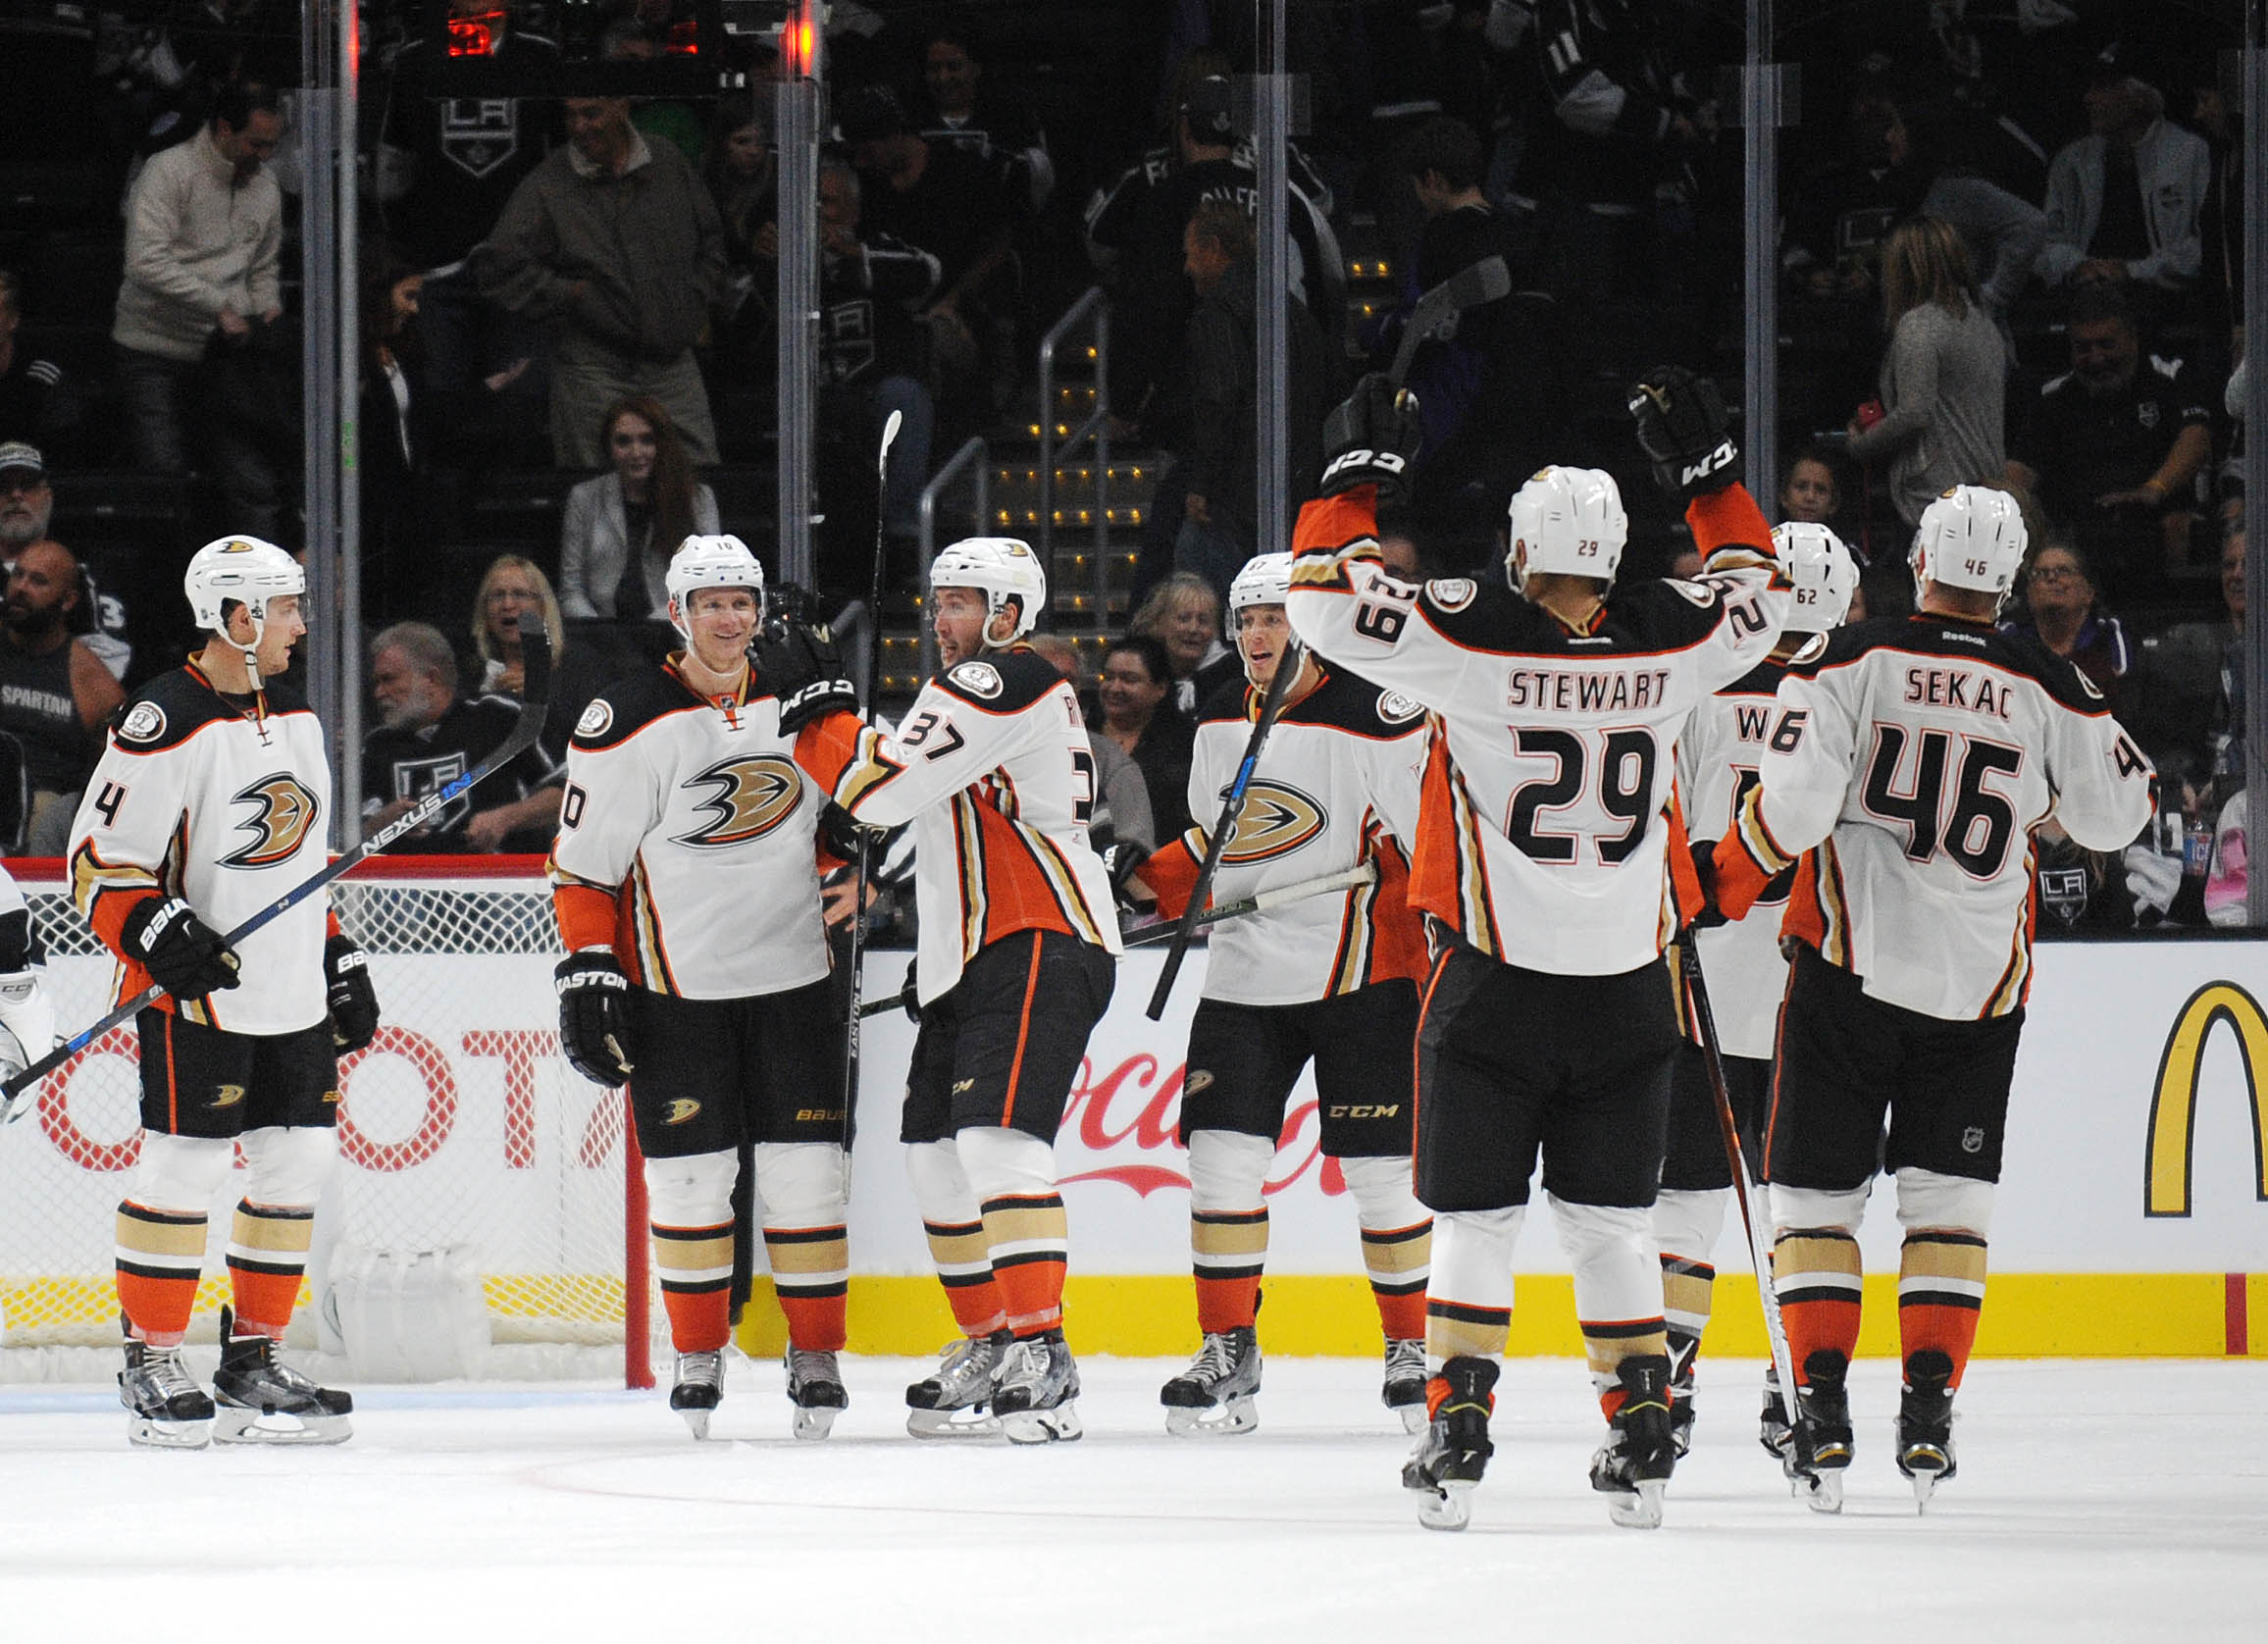 The Ducks celebrate with Corey Perry after he scored the winning goal in overtime at STAPLES Center.